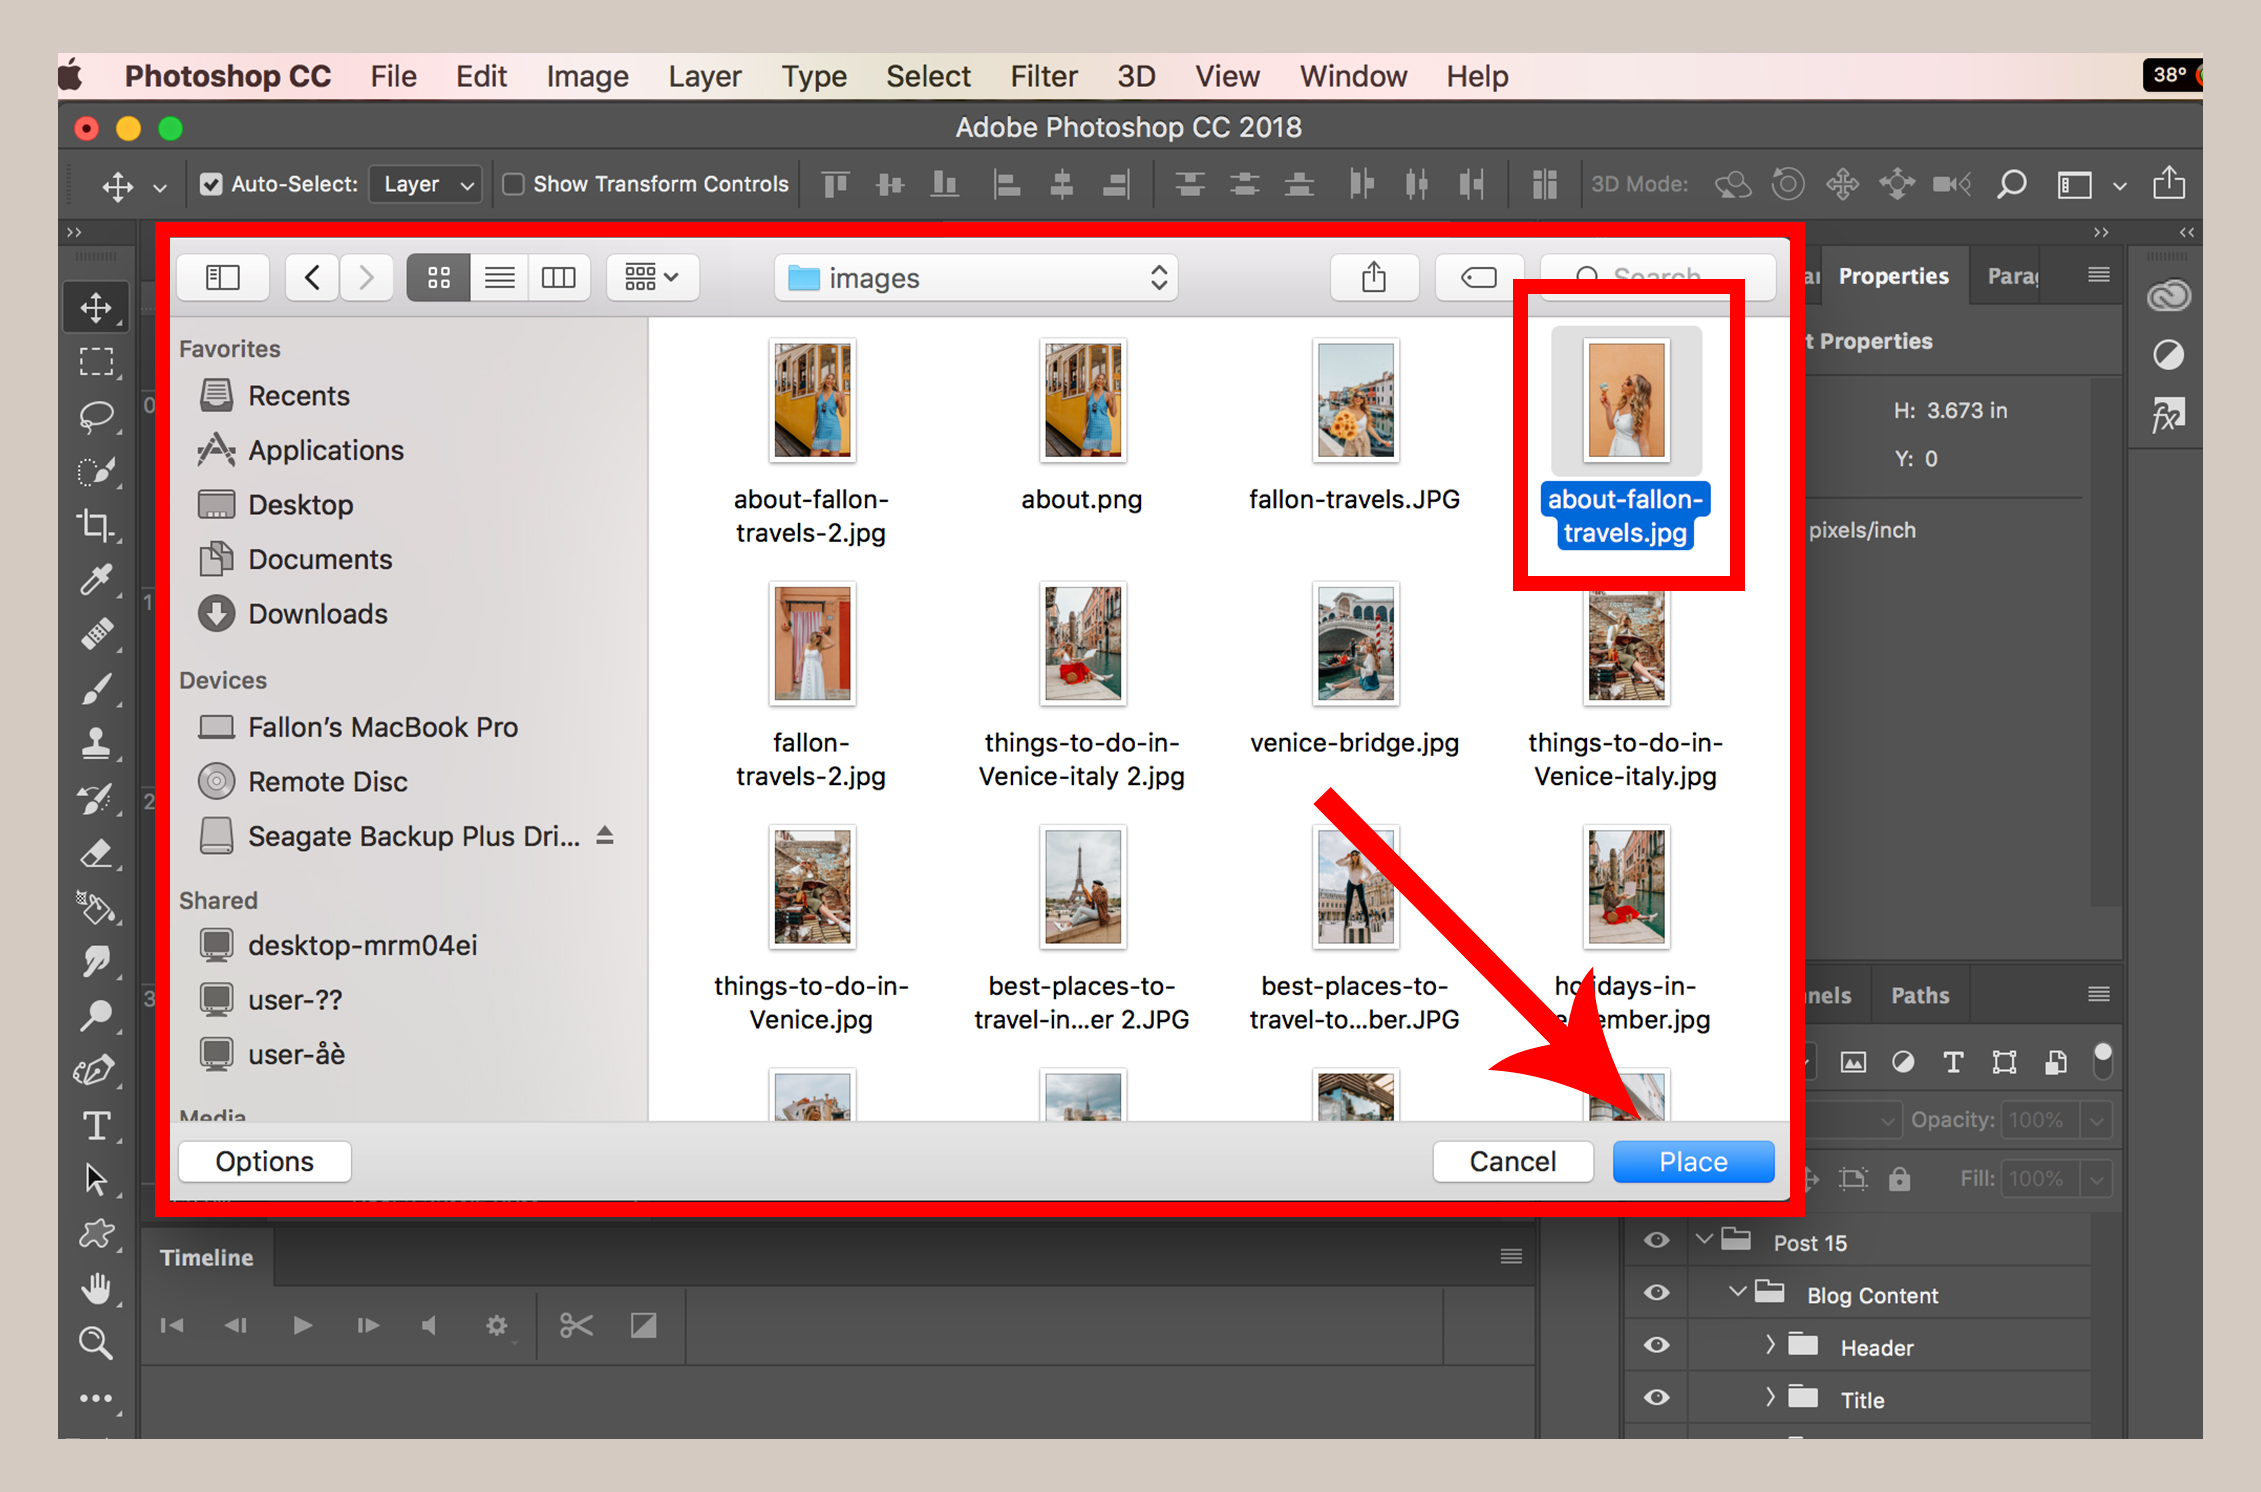 How to add image in Photoshop